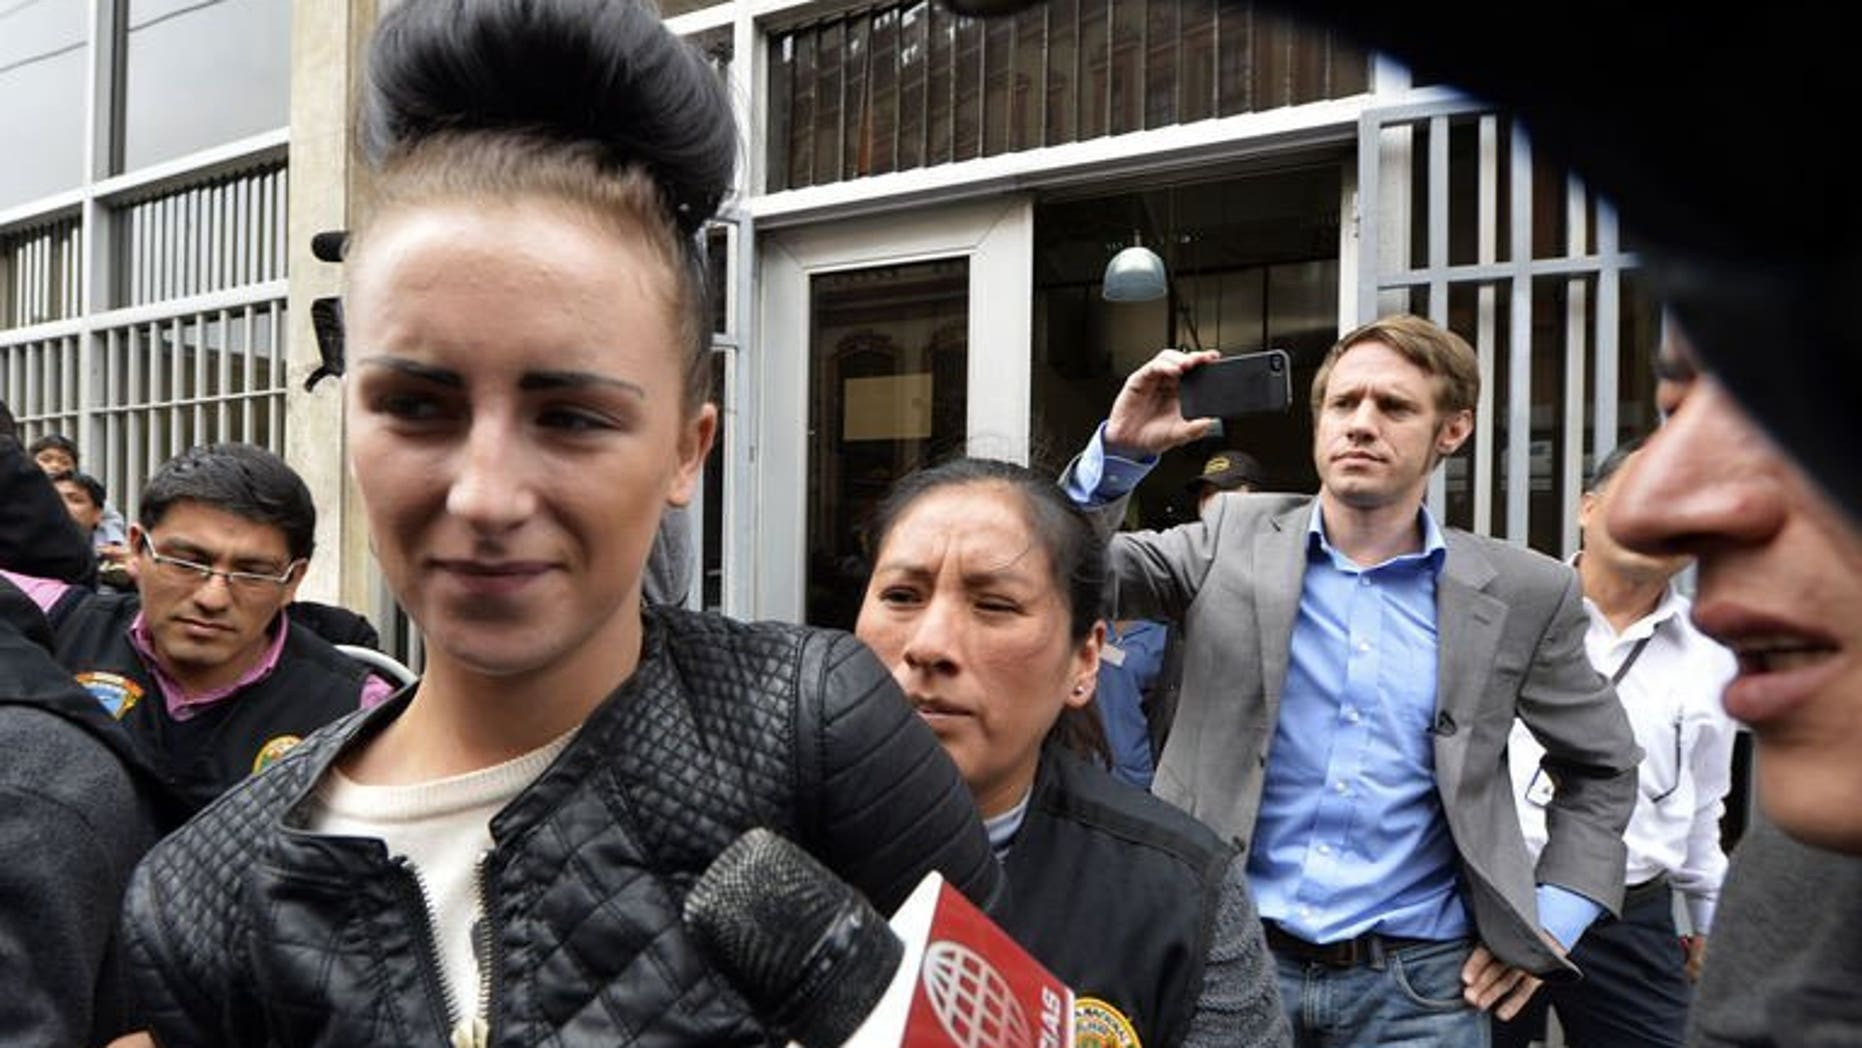 Irish citizen Michaella McCollum Connolly, 20, is escorted out of the Callao prosecutor's building on August 20, 2013, to be taken to the district court with her British companion Melisa Reid. The pair were arrested at Lima airport as they tried to board a flight to Spain carrying what Peruvian police said was 11 kilos of cocaine.